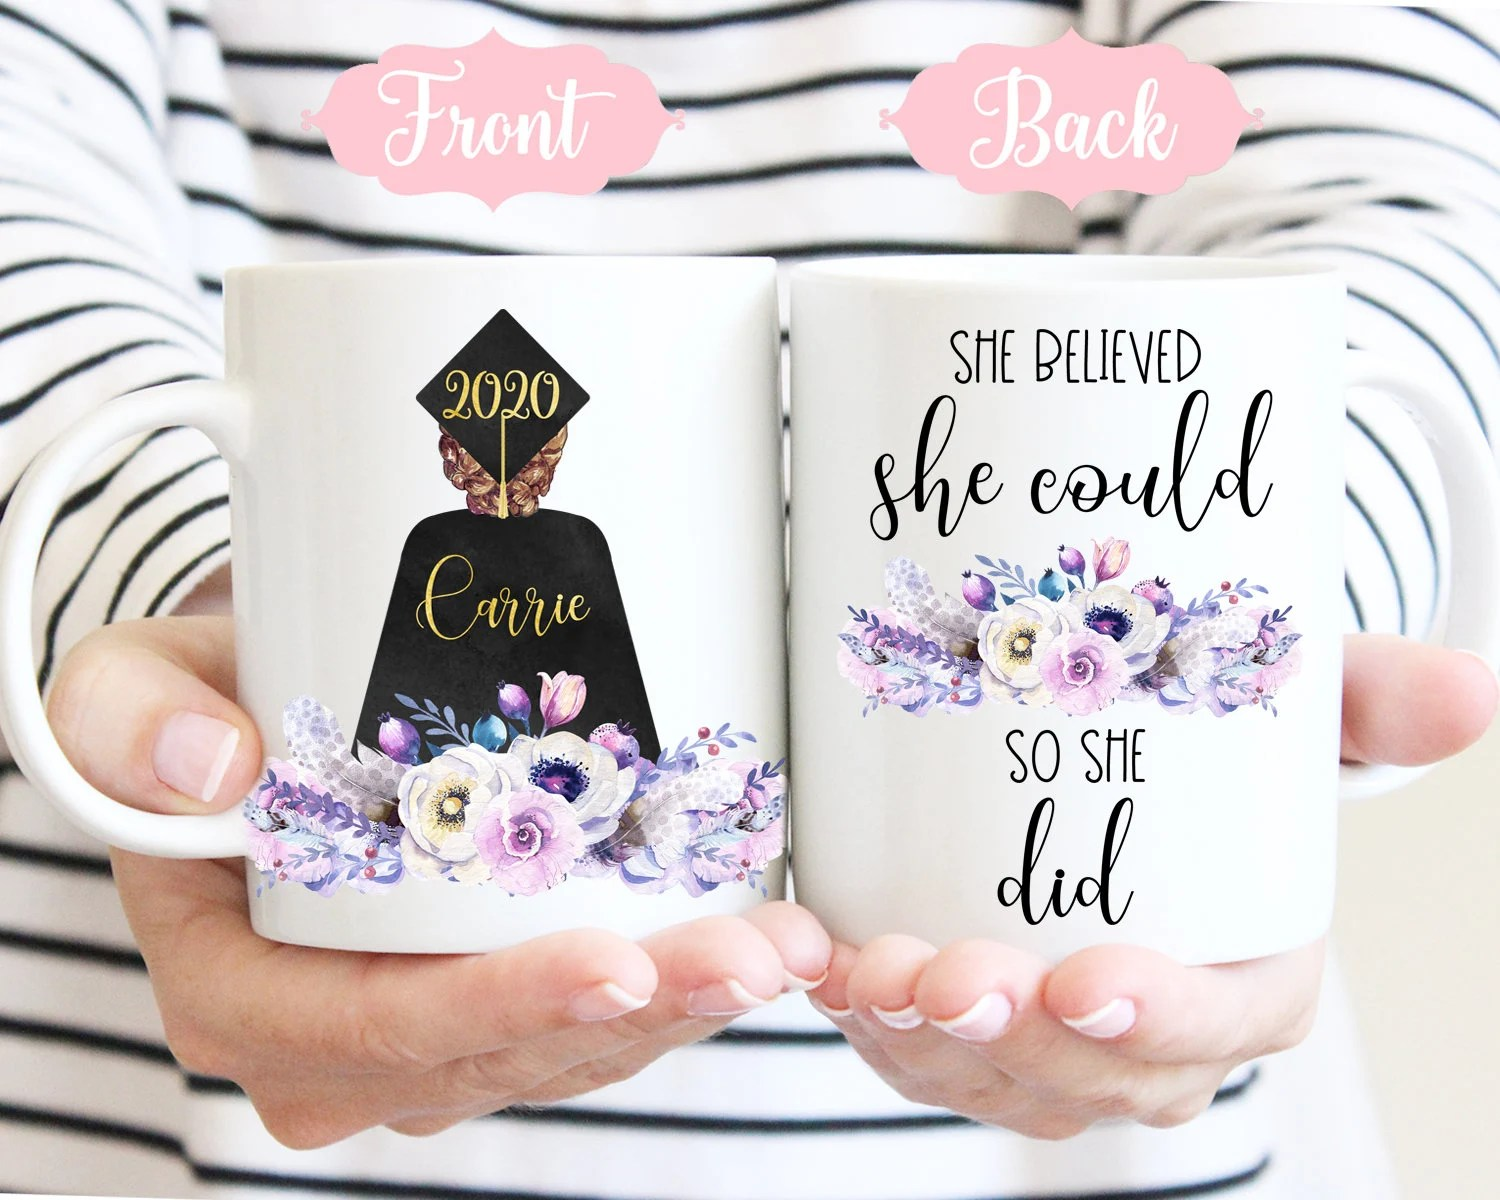 Graduation Gift Personalized For Her She Believed She Could image 1